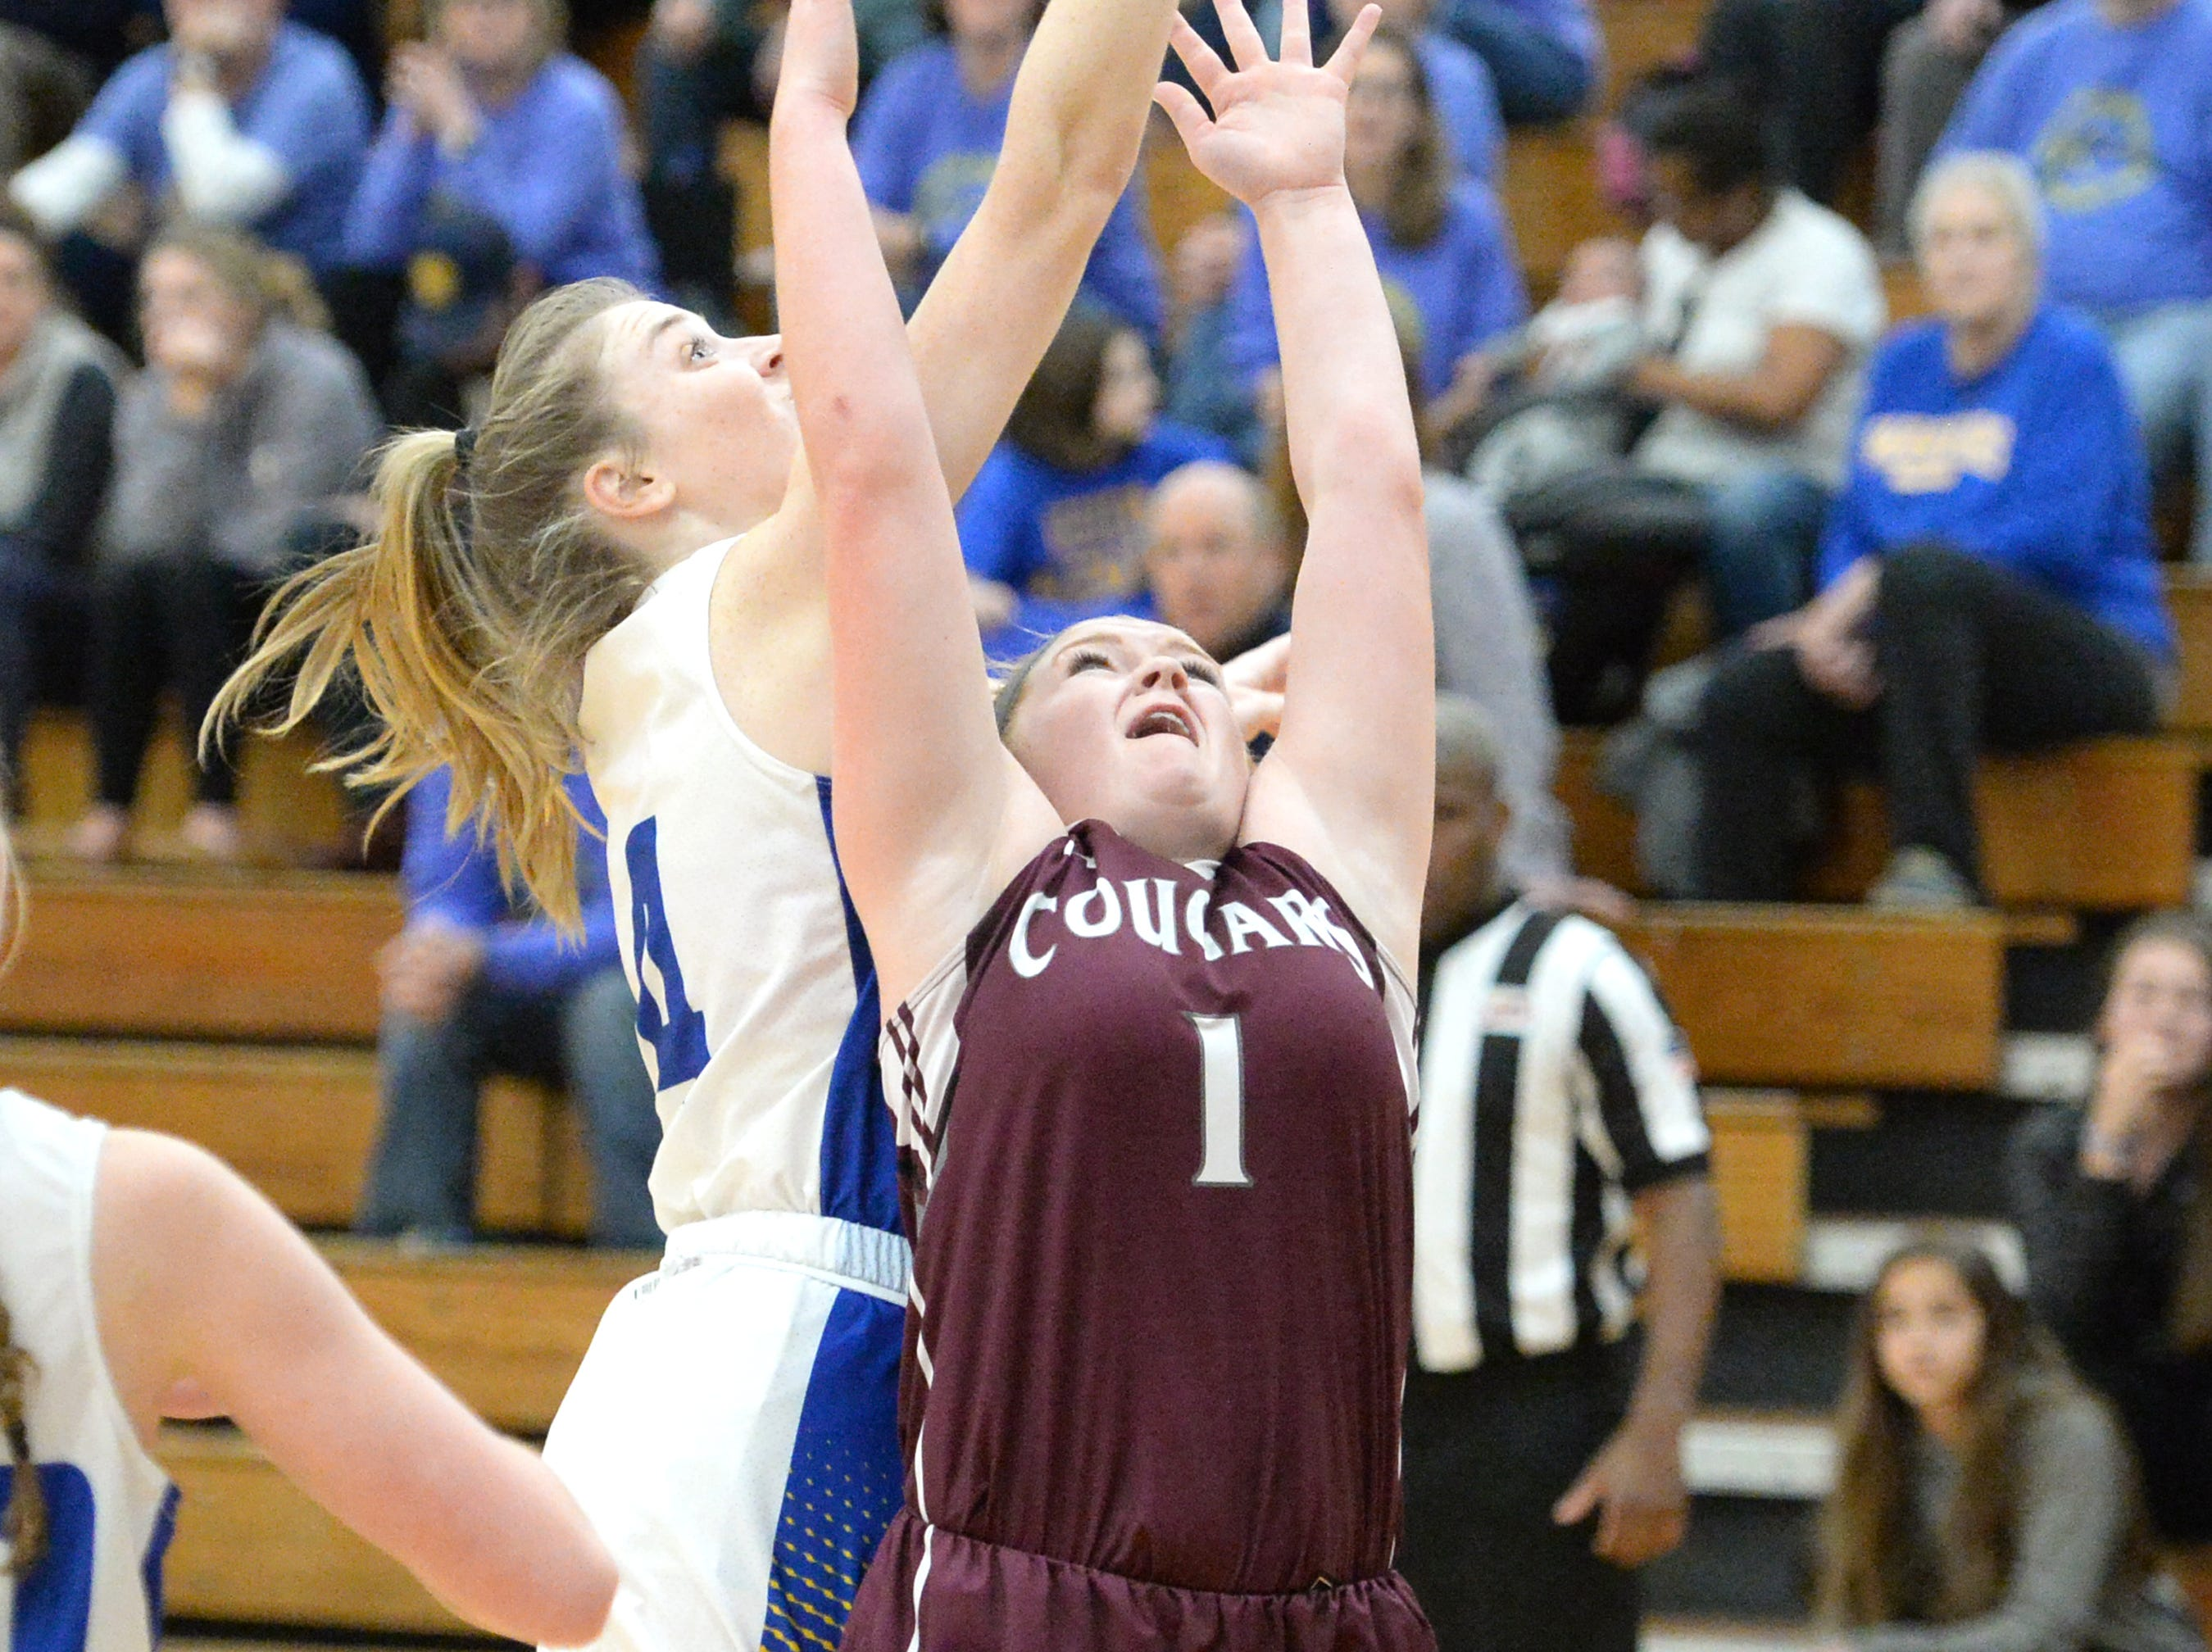 Stuarts Draft's Madi Armentrout battles for a rebound Saturday at the Play for Preemies Showcase at Western Albemarle High School.